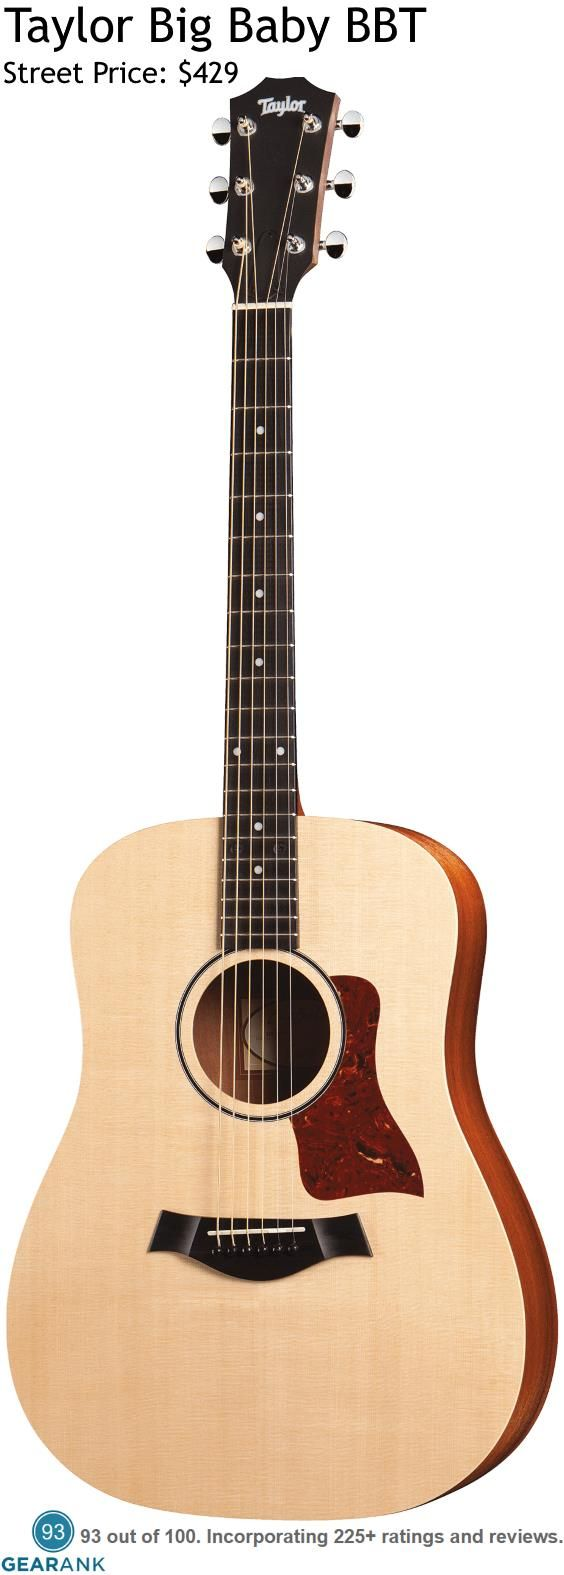 Taylor Big Baby BBT Acoustic Guitar. Taylor are one of the most highly respected brands for acoustic guitars and the 15/16 size BBT is the closest you can get to owning a new full-sized Taylor for less than $500.  For a detailed guide to acoustic guitars see https://www.gearank.com/guides/acoustic-guitars